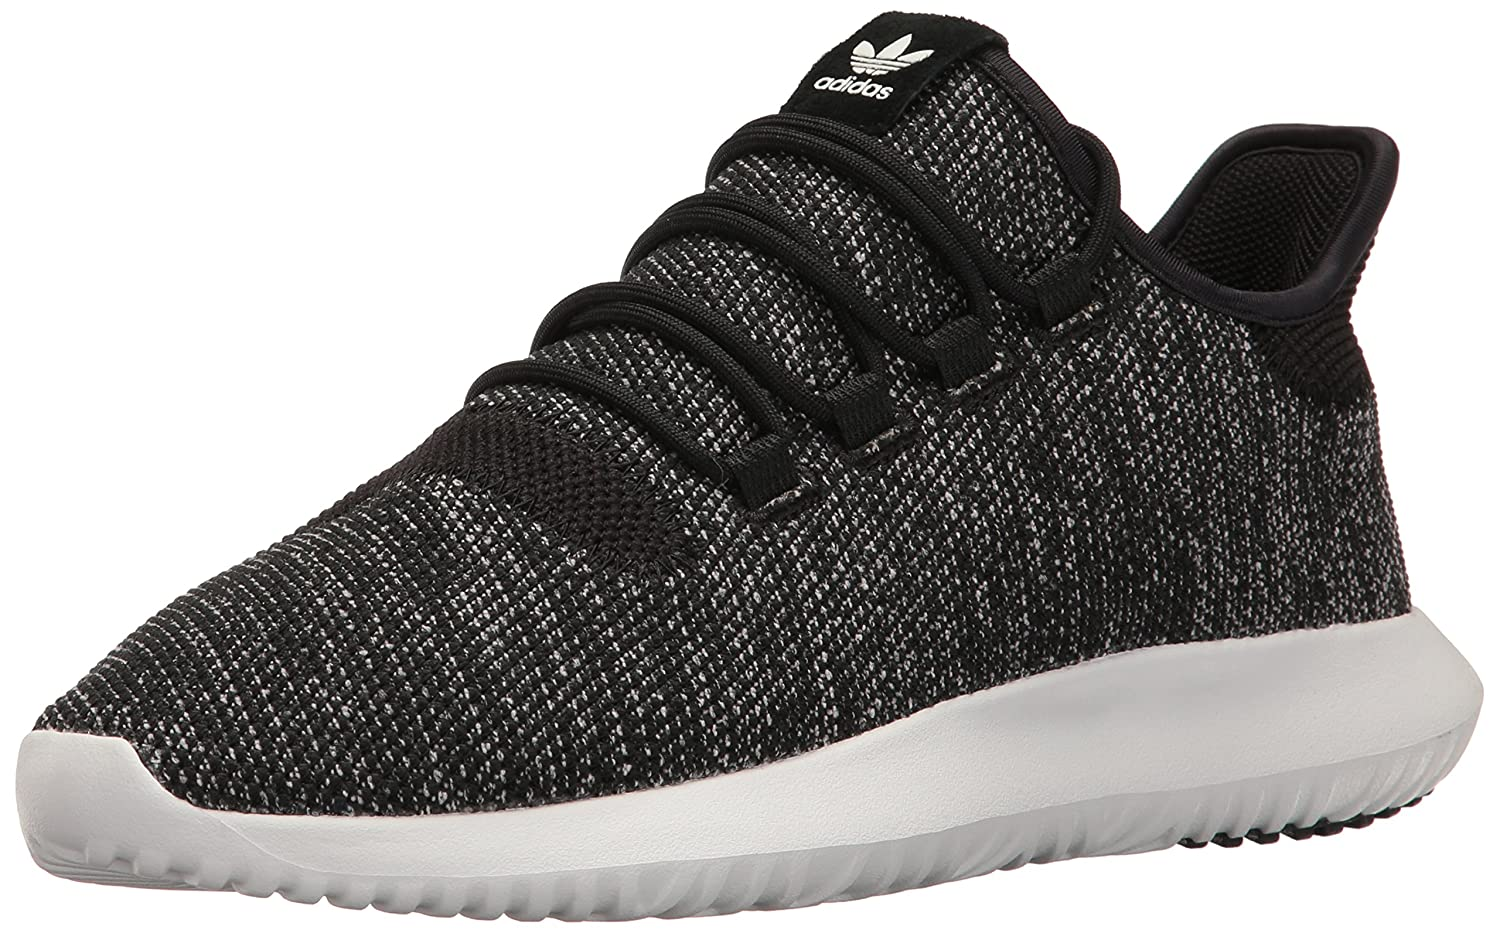 adidas Originals Men's Tubular Shadow Knit